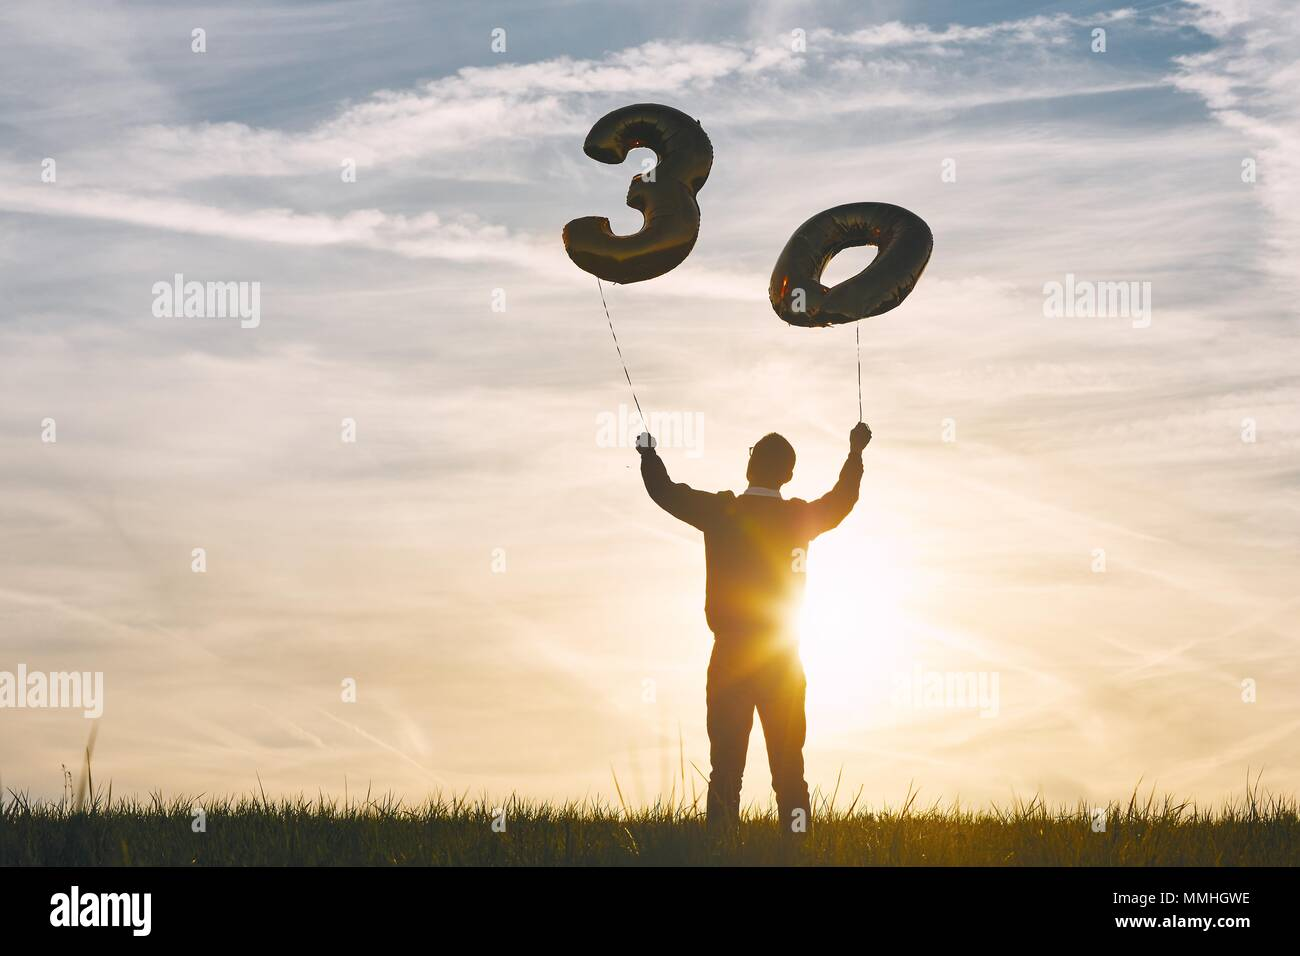 Man celebrates thirty years birthday. Person holding helium balloons in shape of number 30 at sunset. Stock Photo